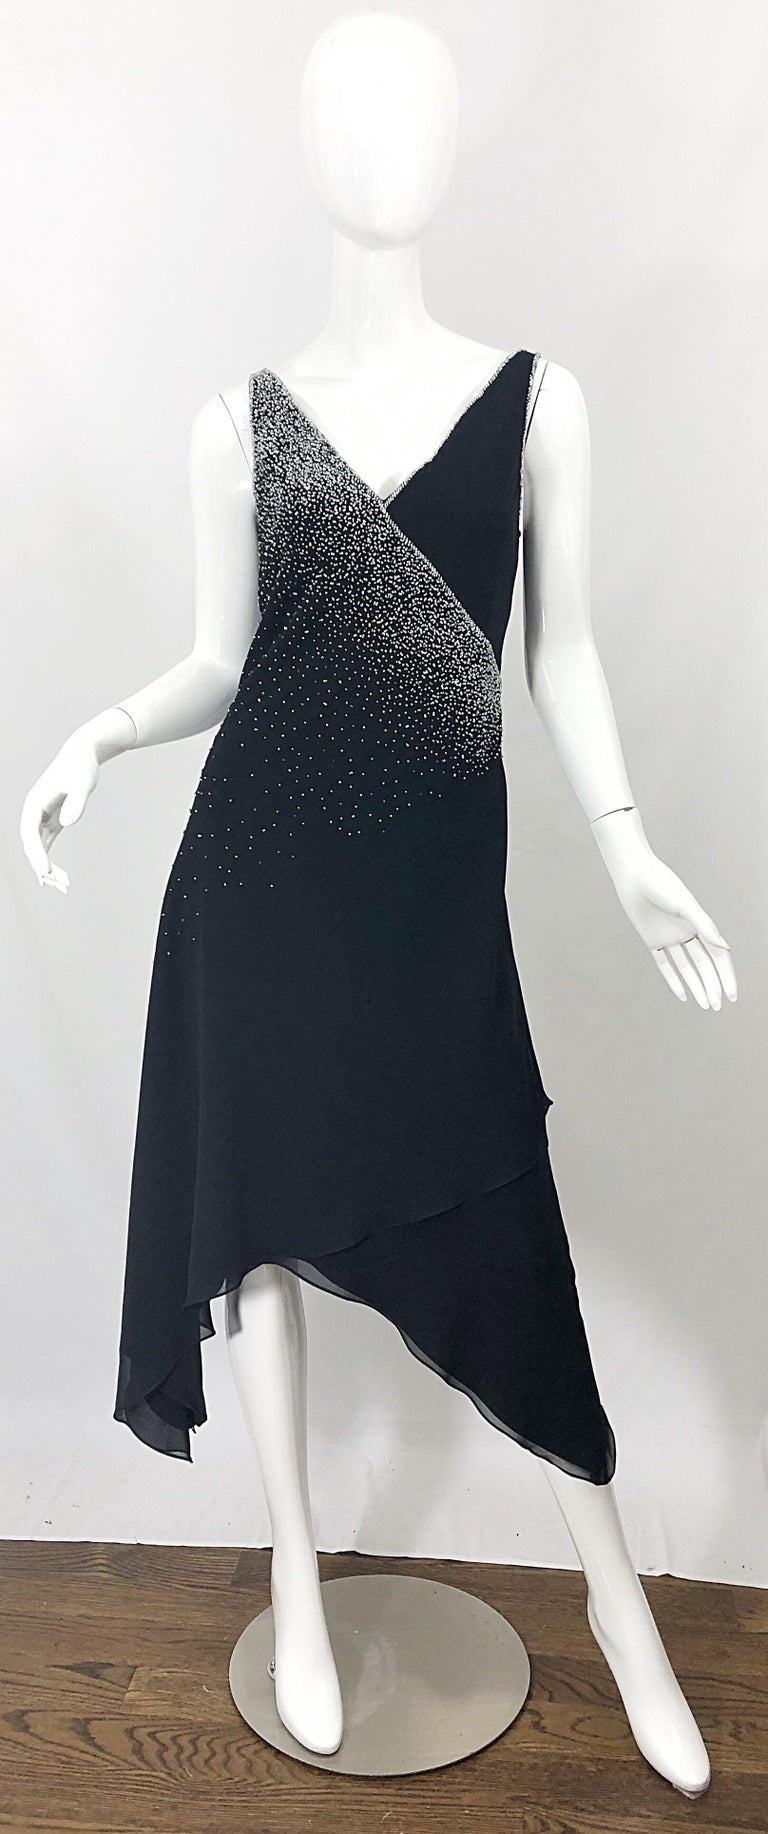 Beautiful vintage 90s BOB MACKIE black silk chiffon hi-lo dress! Hundreds of hand-sewn silver beads throughout. Hidden zipper up the back with hook-and-eye closure. The perfect timeless black dress that offers so much style. Very well made, with